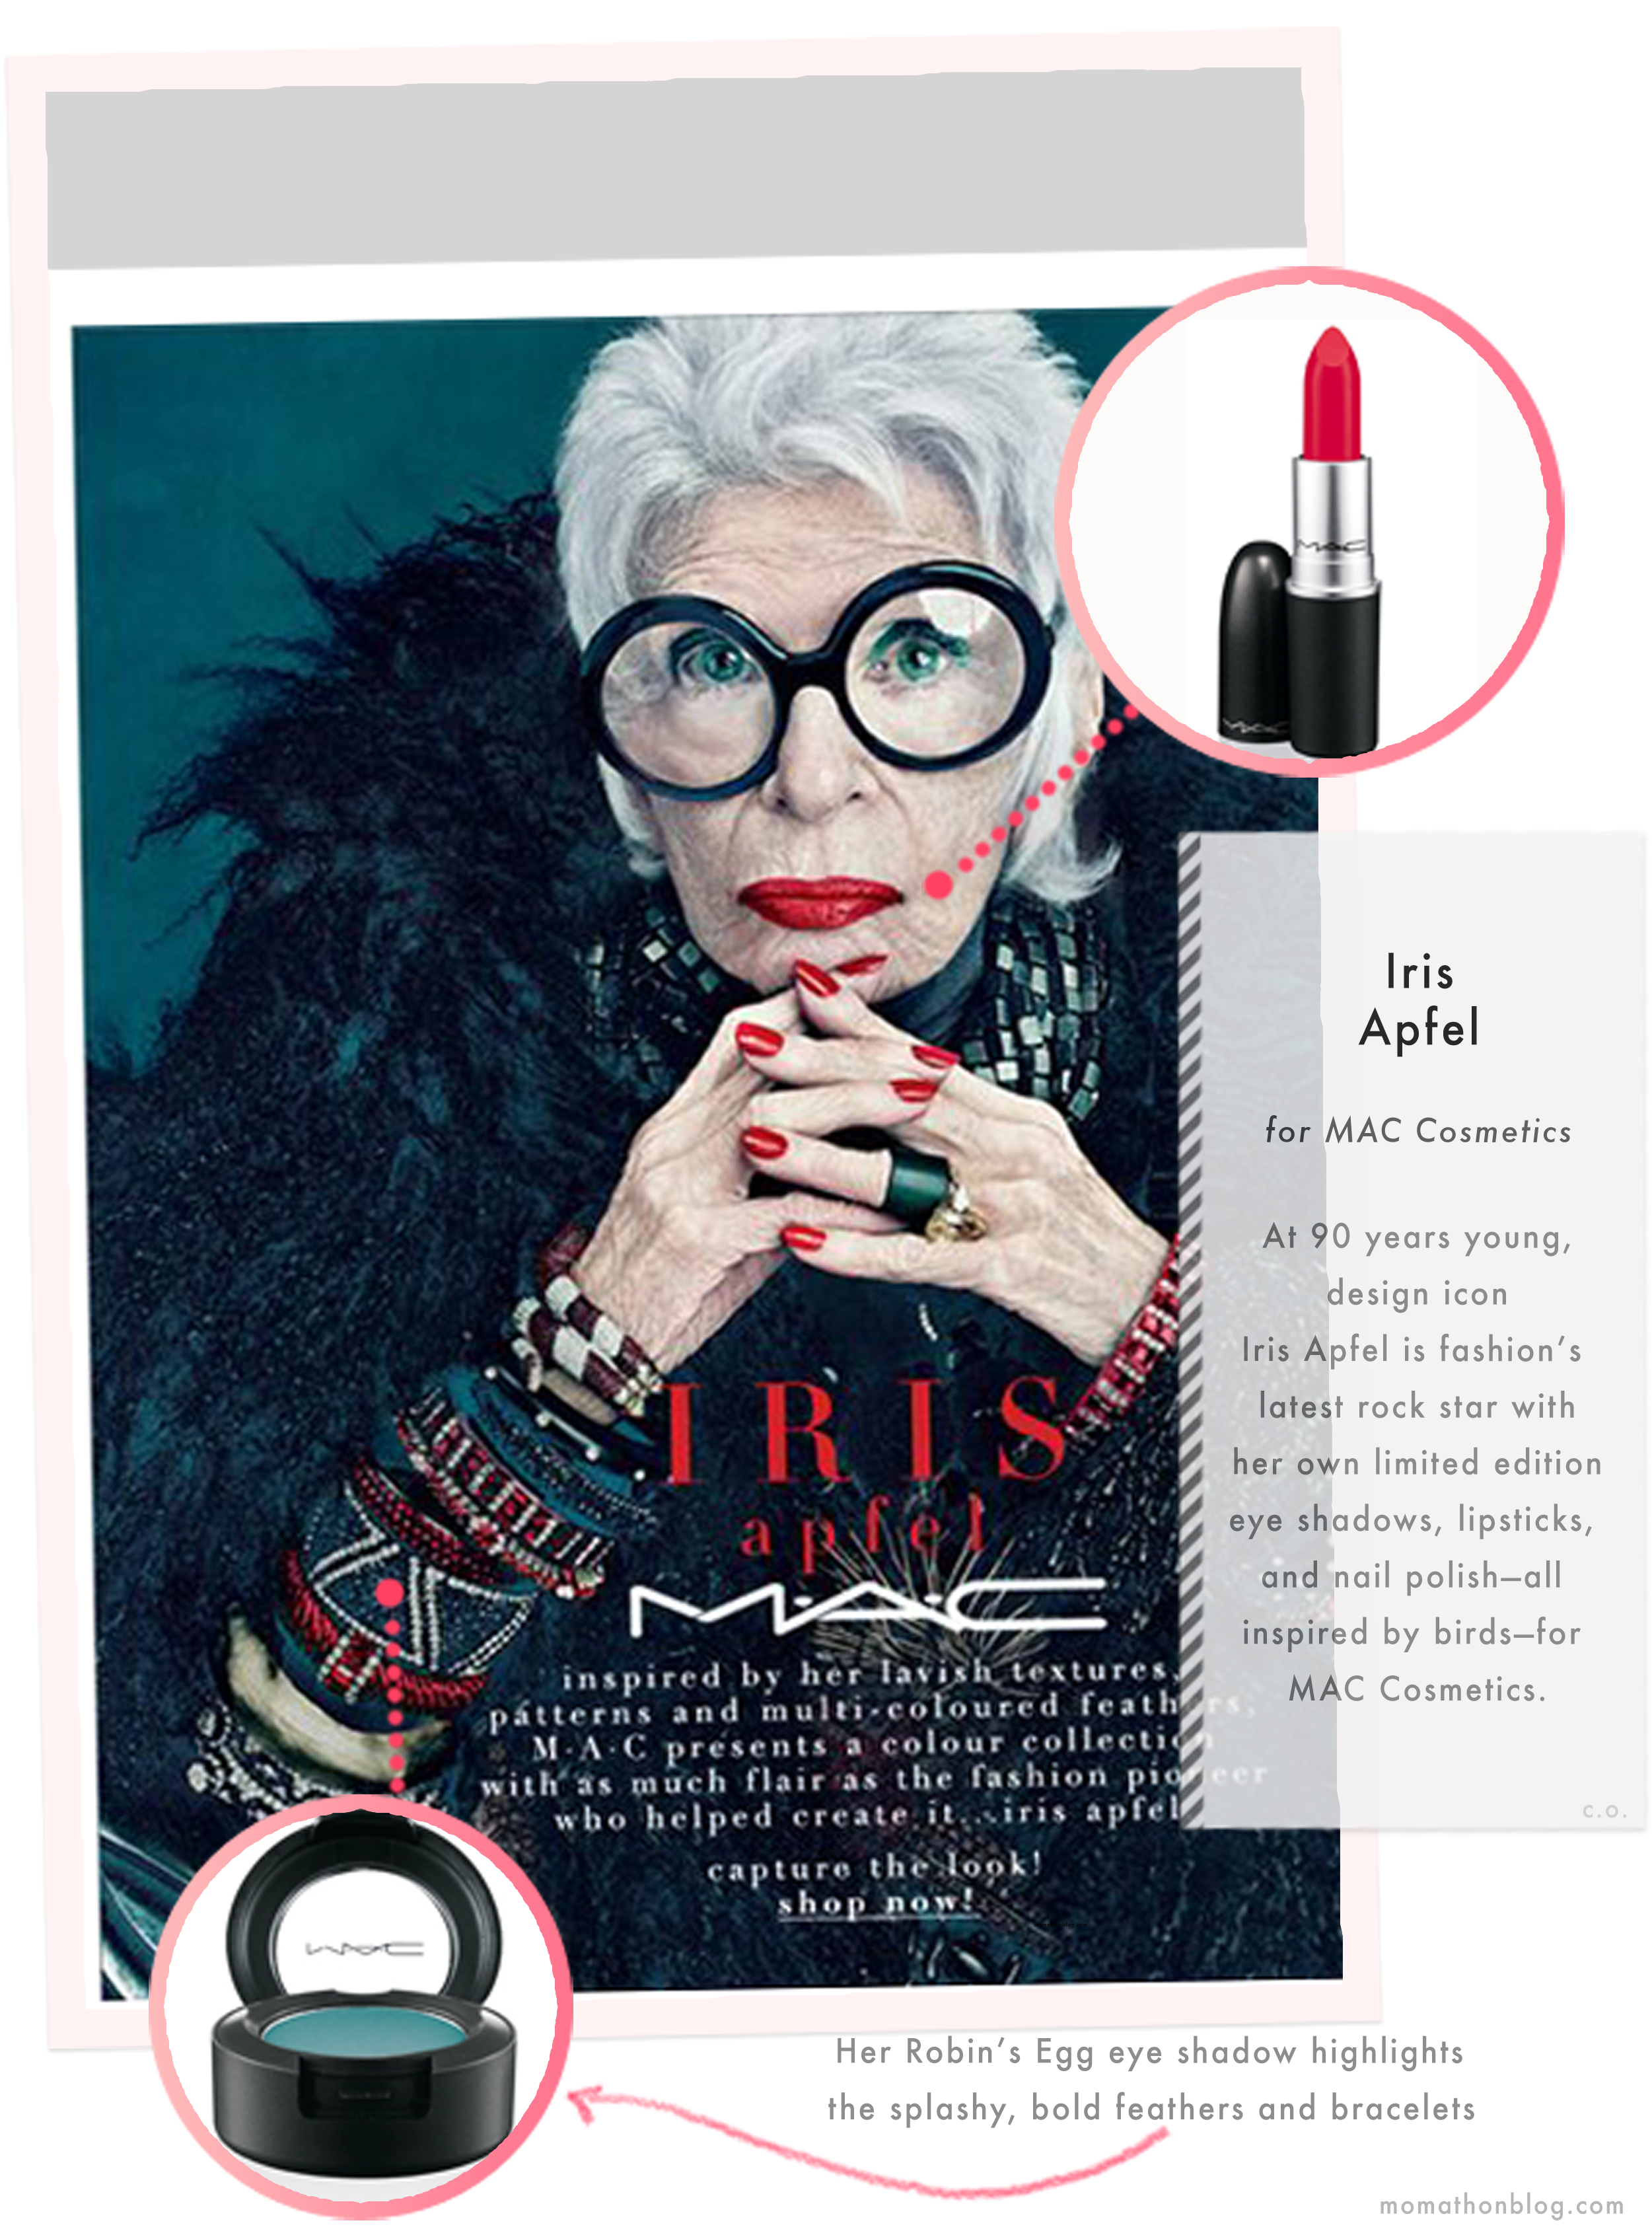 Iris Apfel for MAC Cosmetics, image by MomathonBlog.com